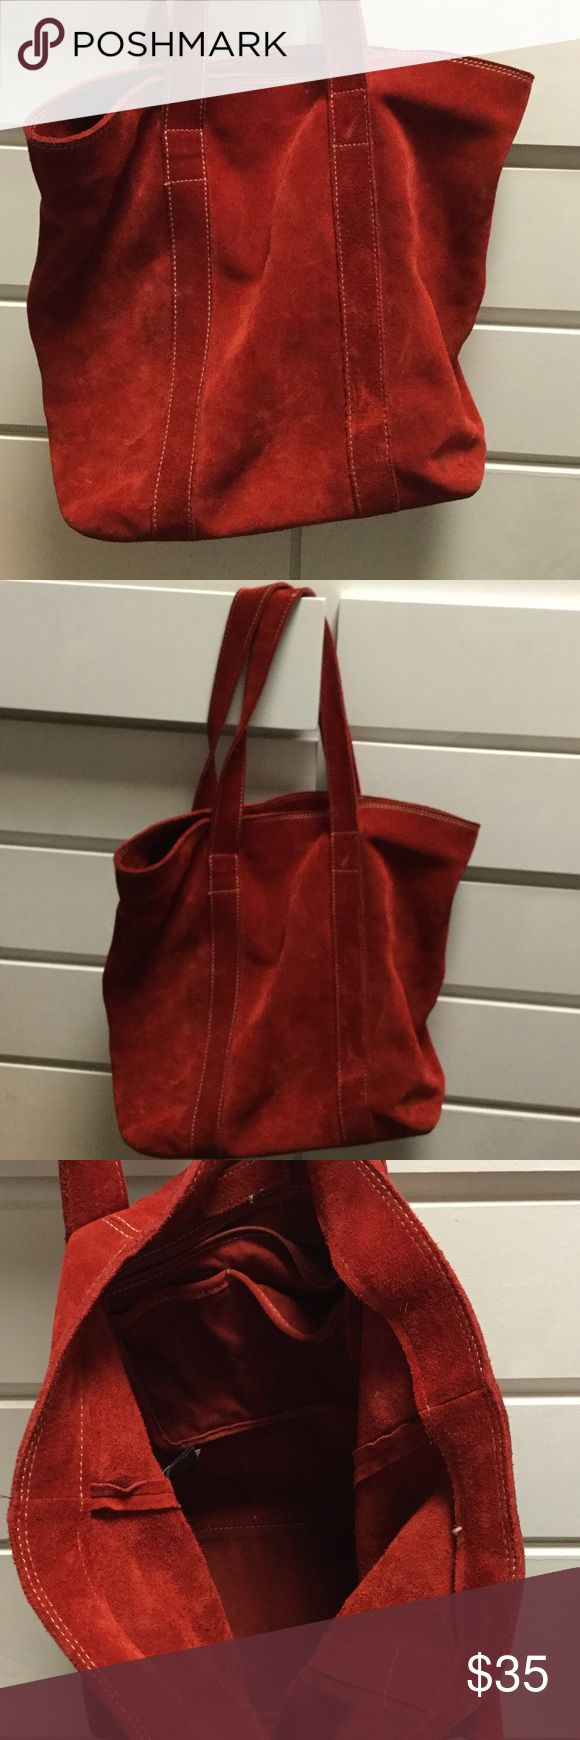 Banana Republic split leather red shoulder bag Banana Republic split leather red shoulder bag.  Excellent condition, ready to be matched with your wardrobe! Big bag holds a lot! Bags Shoulder Bags